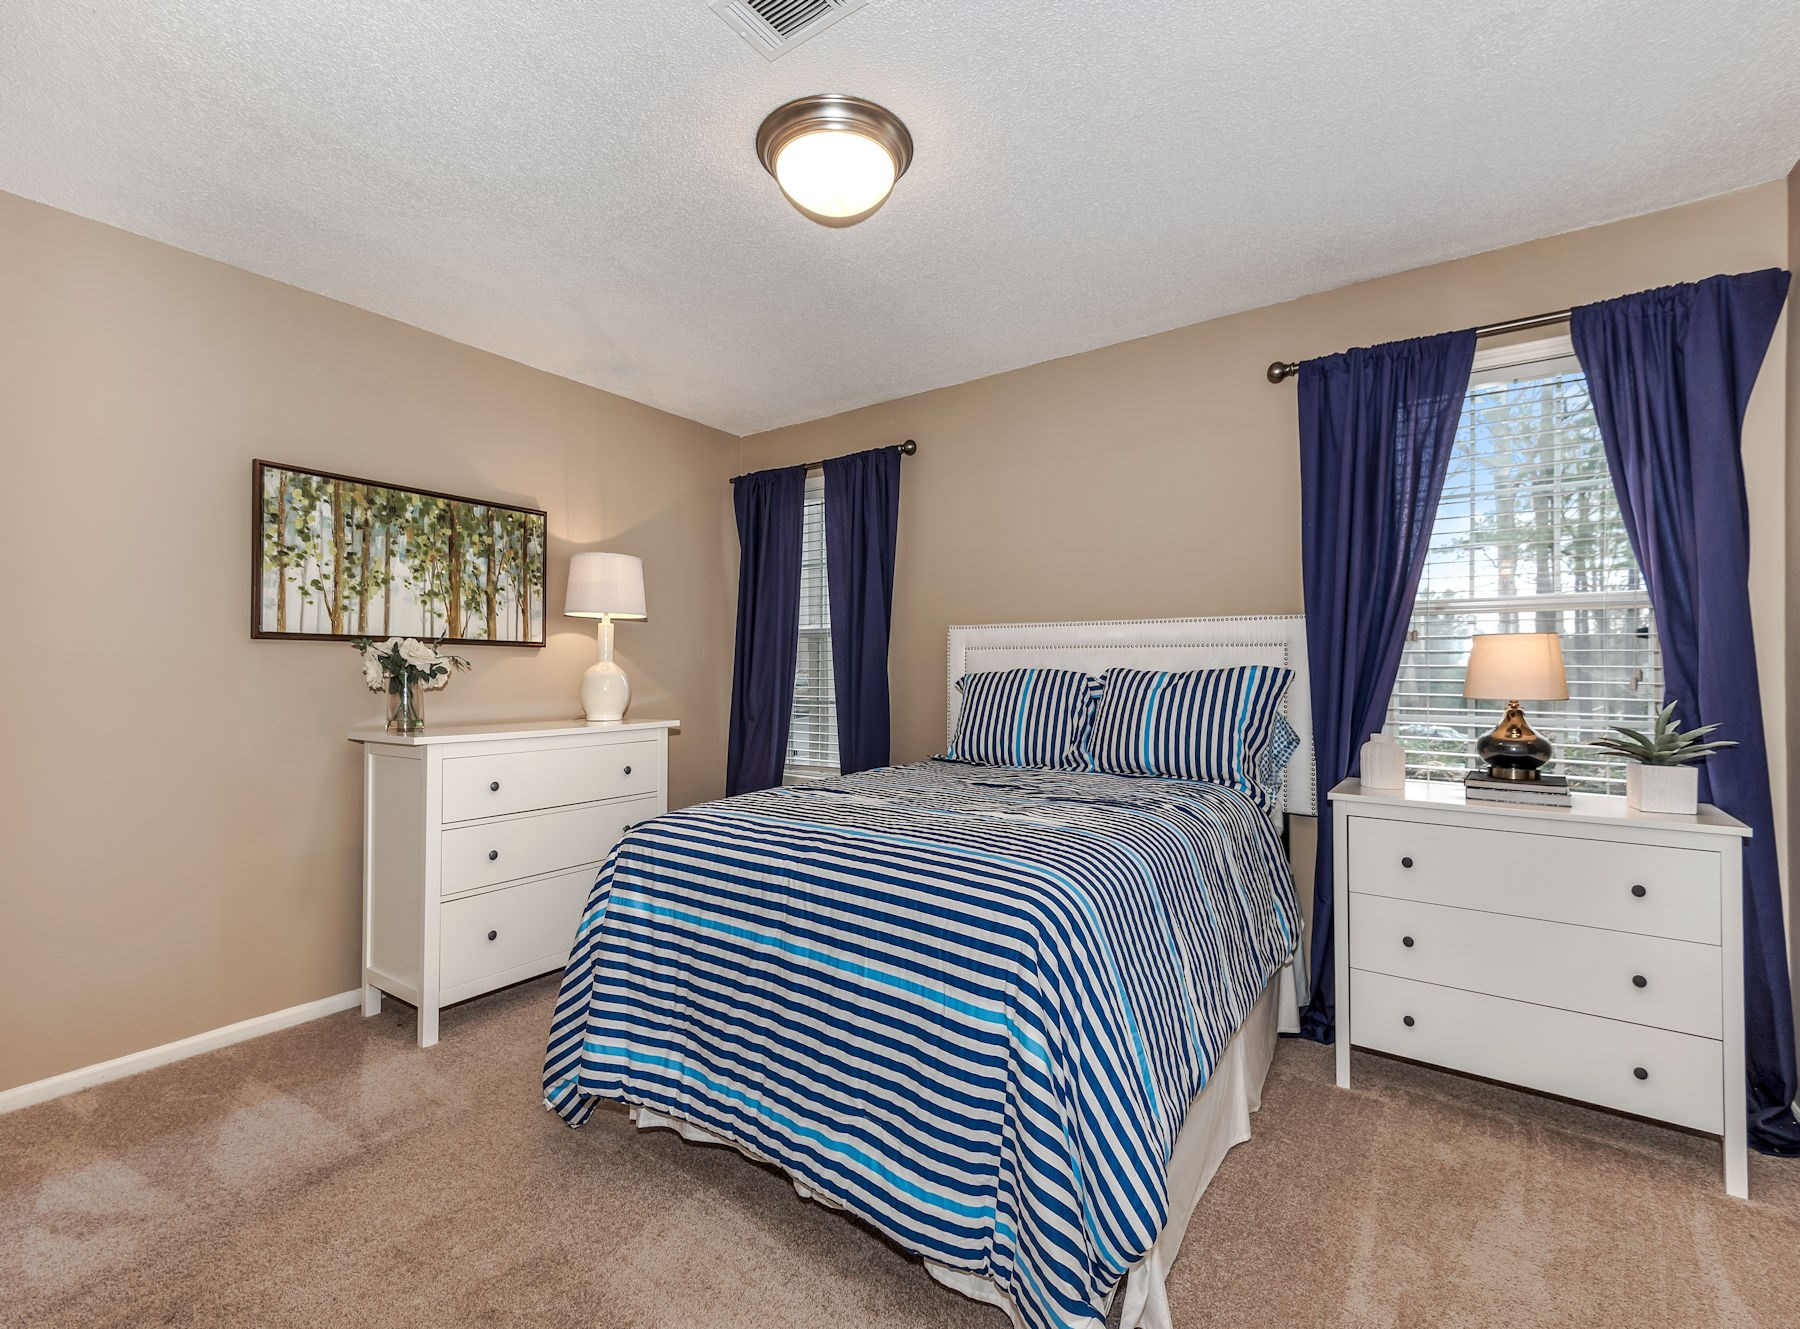 Model Bedroom With Carpet